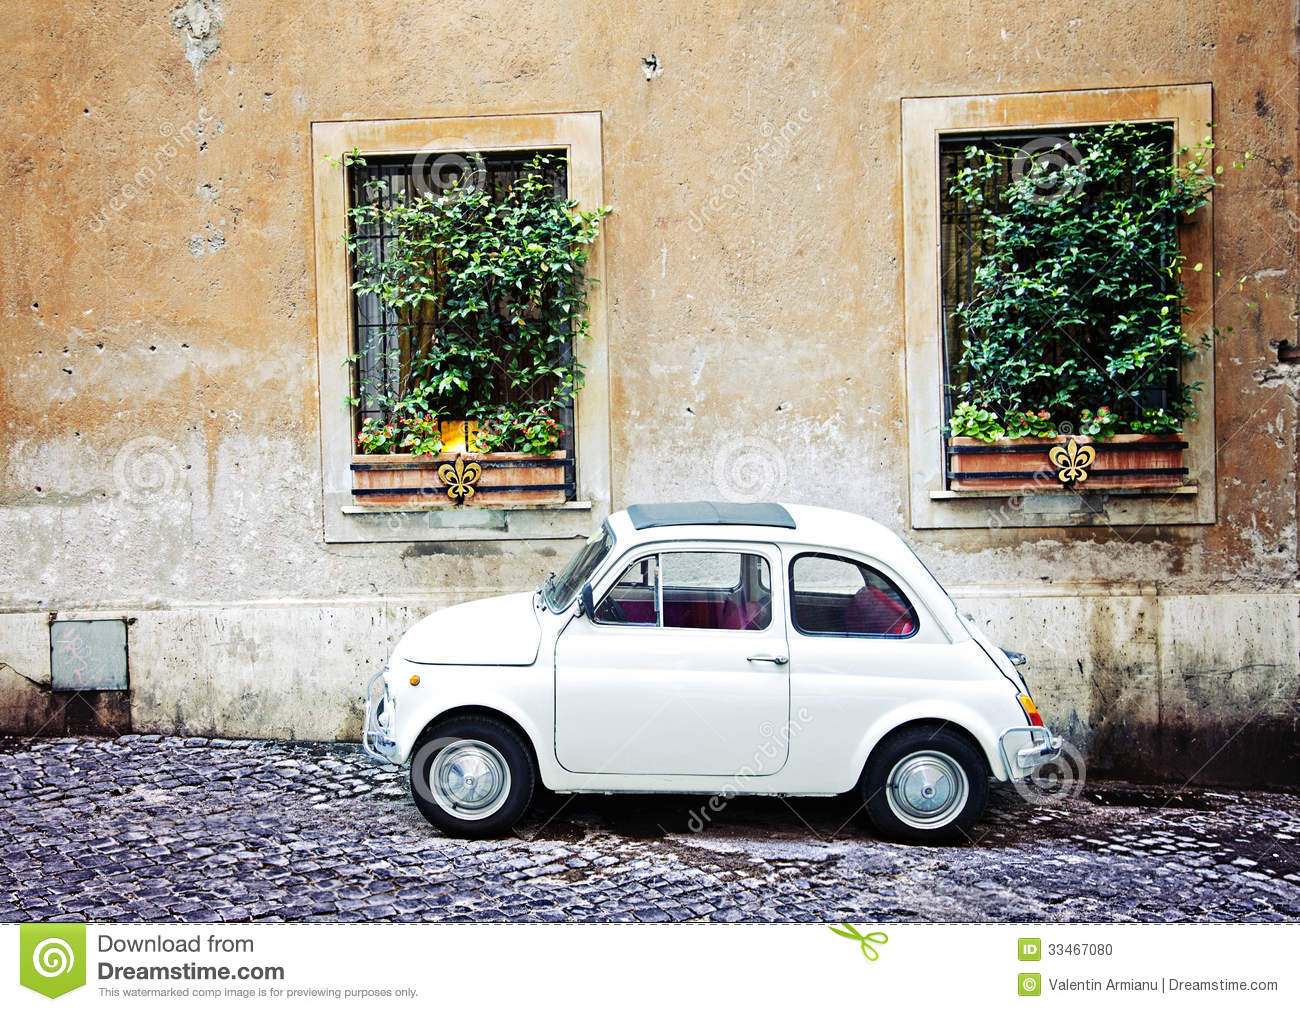 fiat 500 parked in rome italy stock photo image 33467080. Black Bedroom Furniture Sets. Home Design Ideas